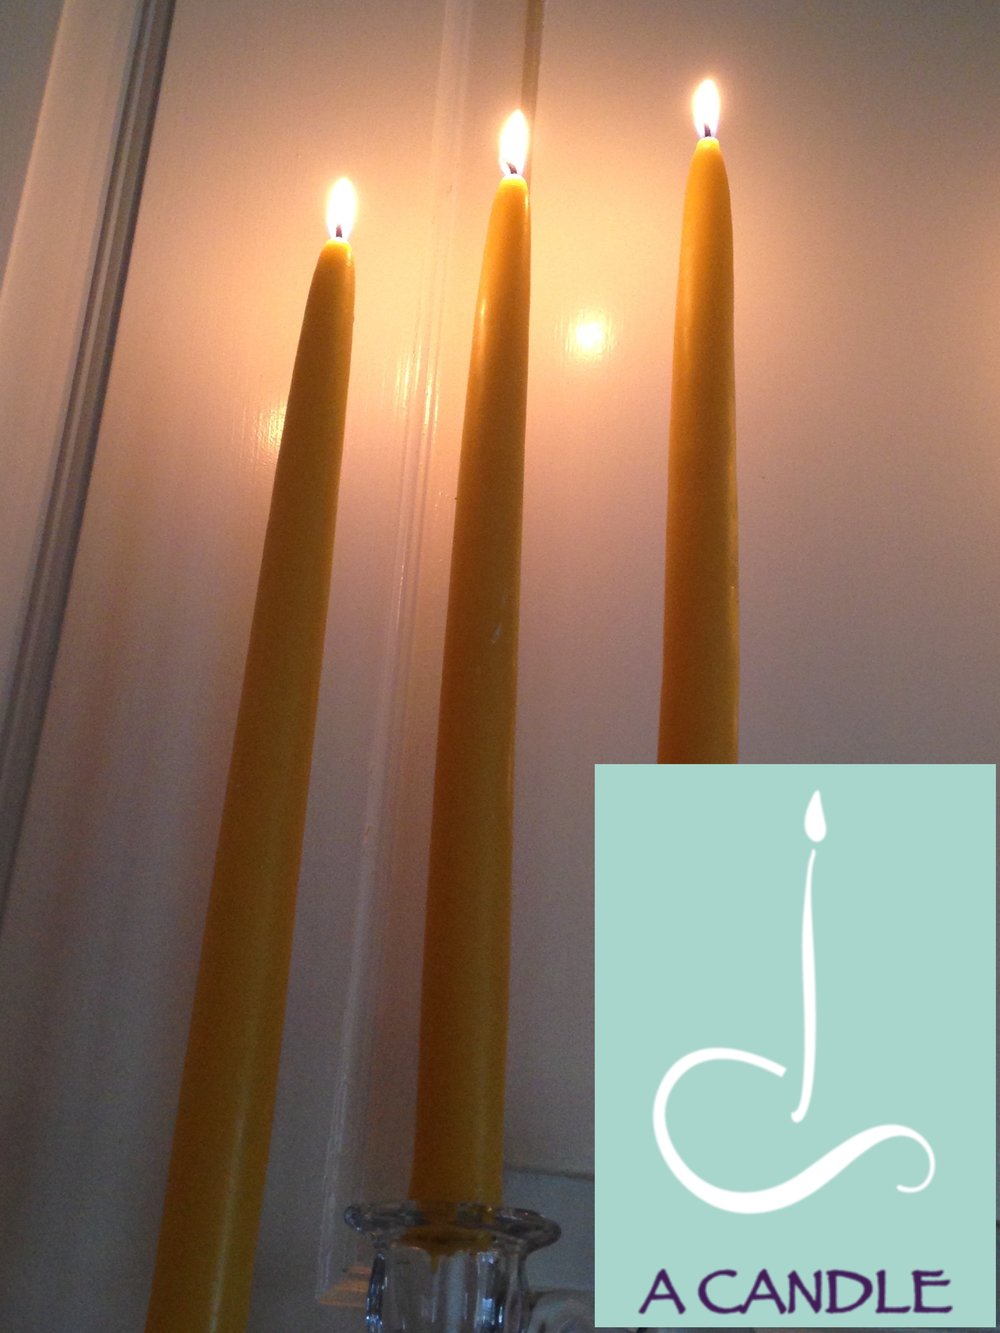 IsaCandle - IS A Candle, an artisanal candle-maker based in DC, produces hand-dipped 100% beeswax tapers, ornaments and fire-starters. Beeswax candles give off a beautiful bright glow and gentle honey fragrance, are naturally dripless, burn twice as long as conventional candles, and burn clean.www.isacandle.com